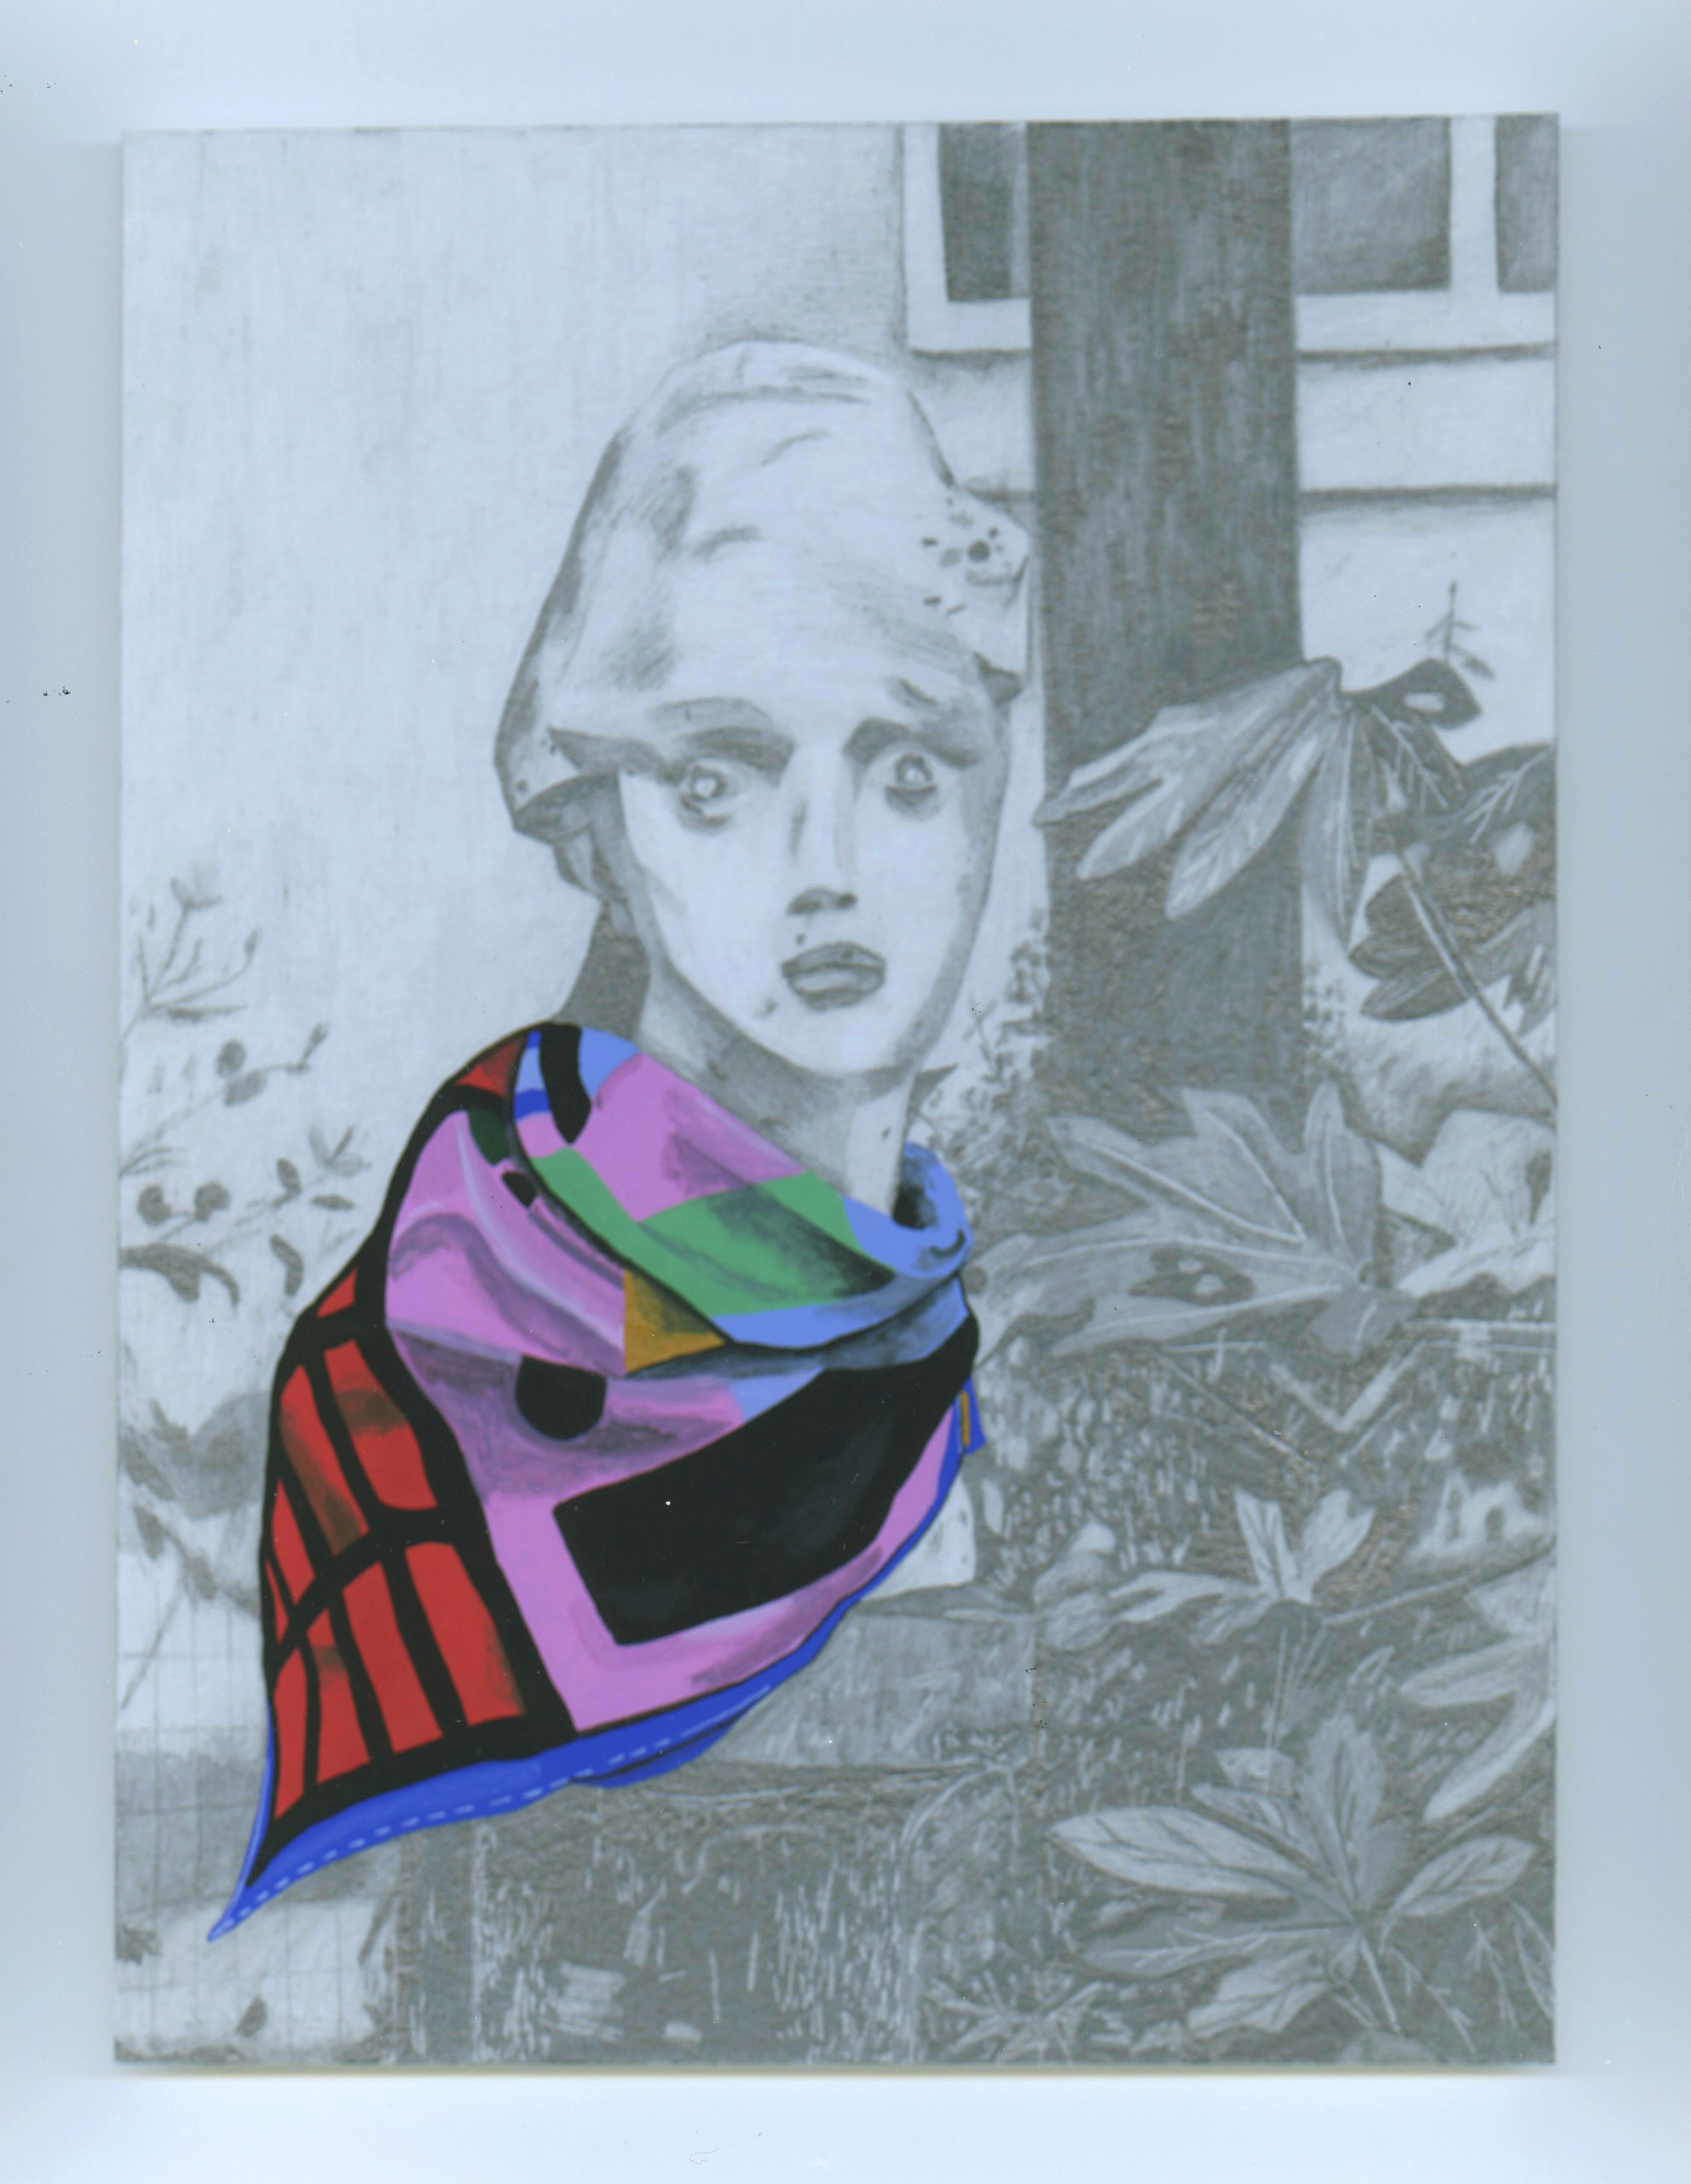 """Libby Black, """"Front View of Statue with Hermes Scarf"""", pencil on paper, 10 x 8 in, 2017"""